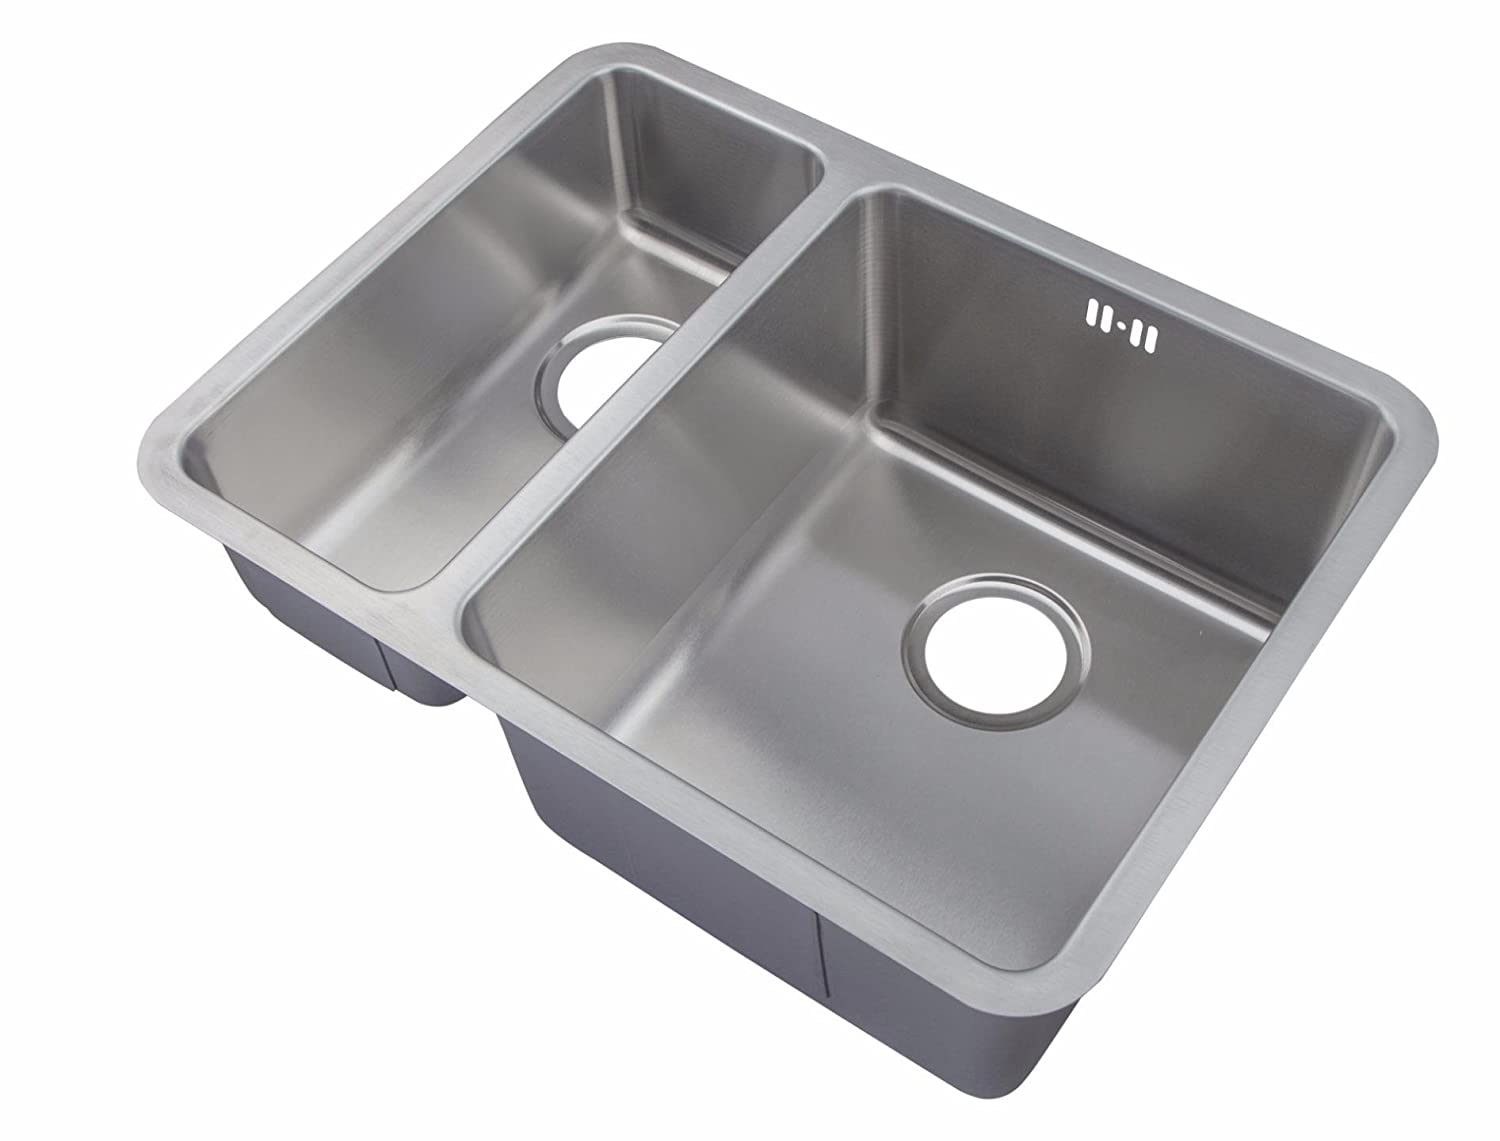 Undermount Stainless Steel 1 5 Bowls Kitchen Sinks Waste Kit D03 Large Bowl